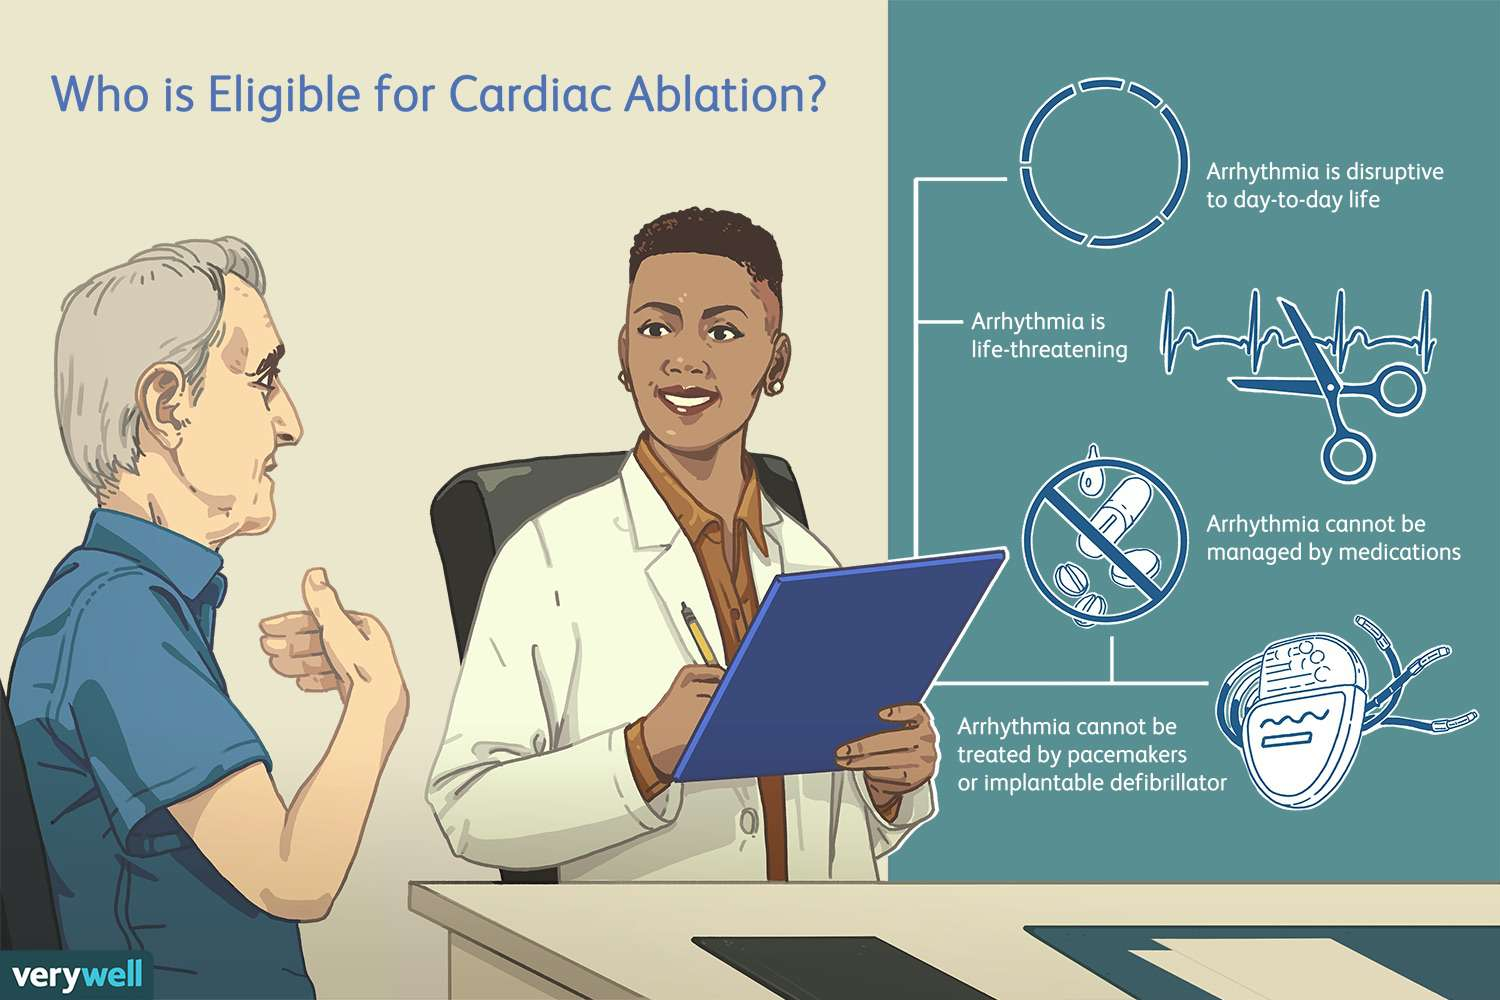 who is eligible for cardiac ablation